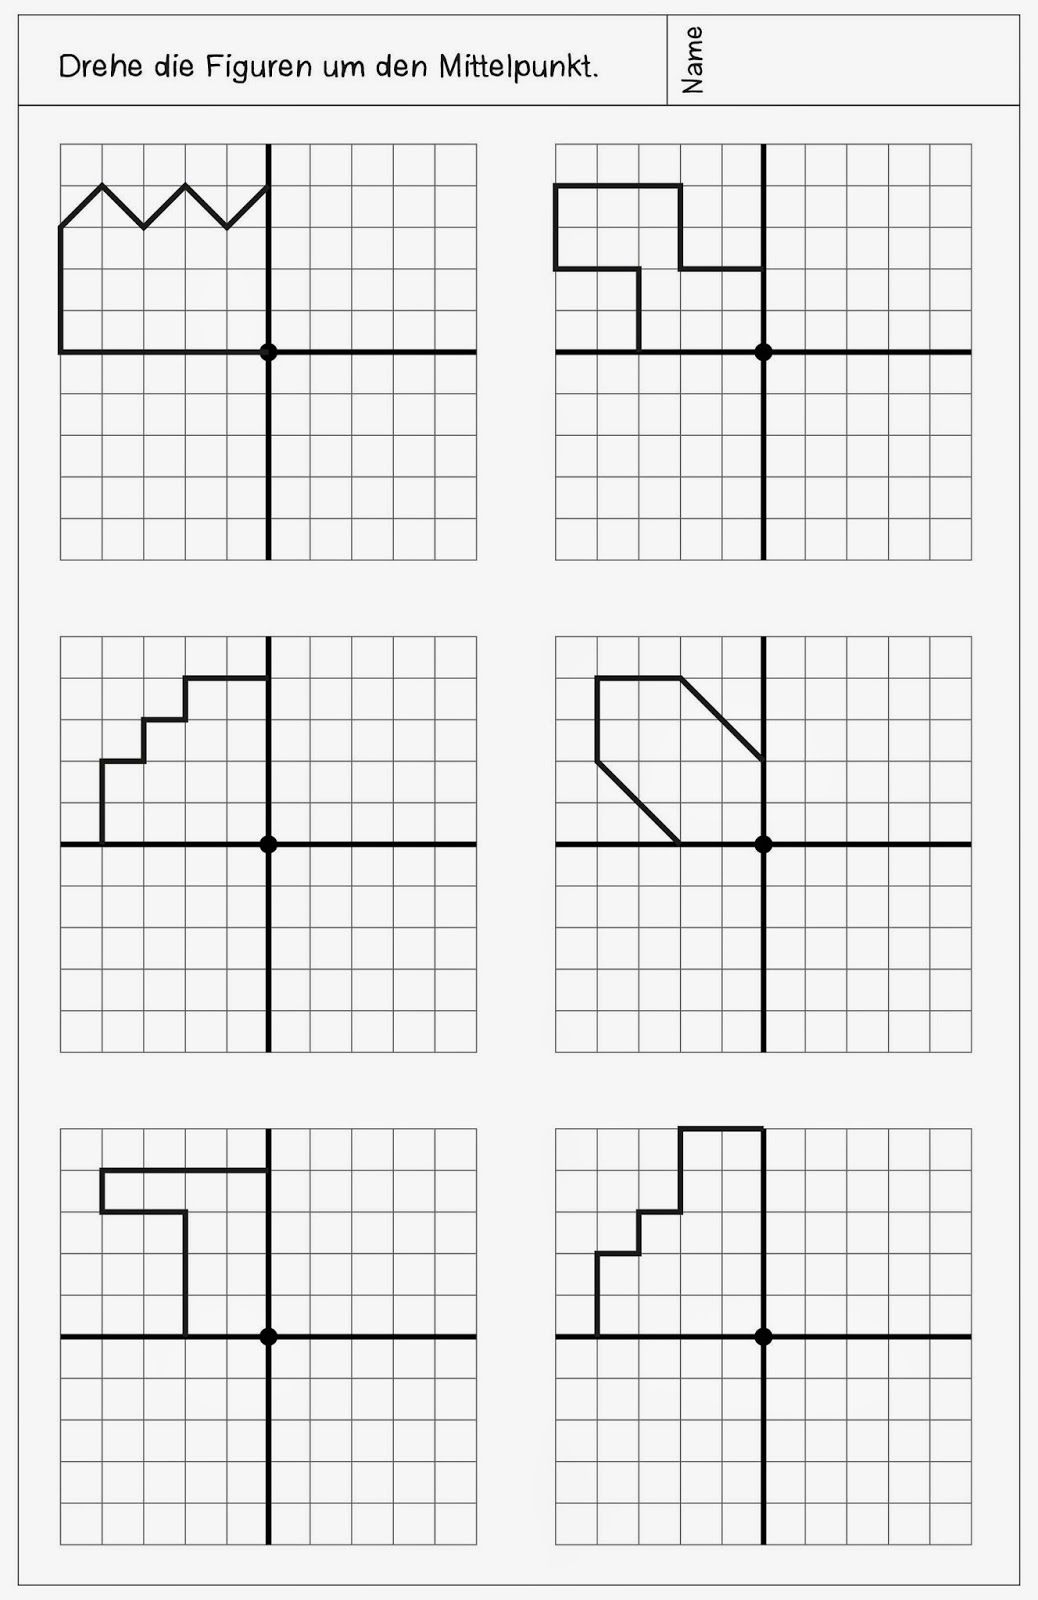 Workbooks symmetry worksheets for high school : neue Arbeitsblätter zur Drehsymmetrie | Math, Worksheets and School